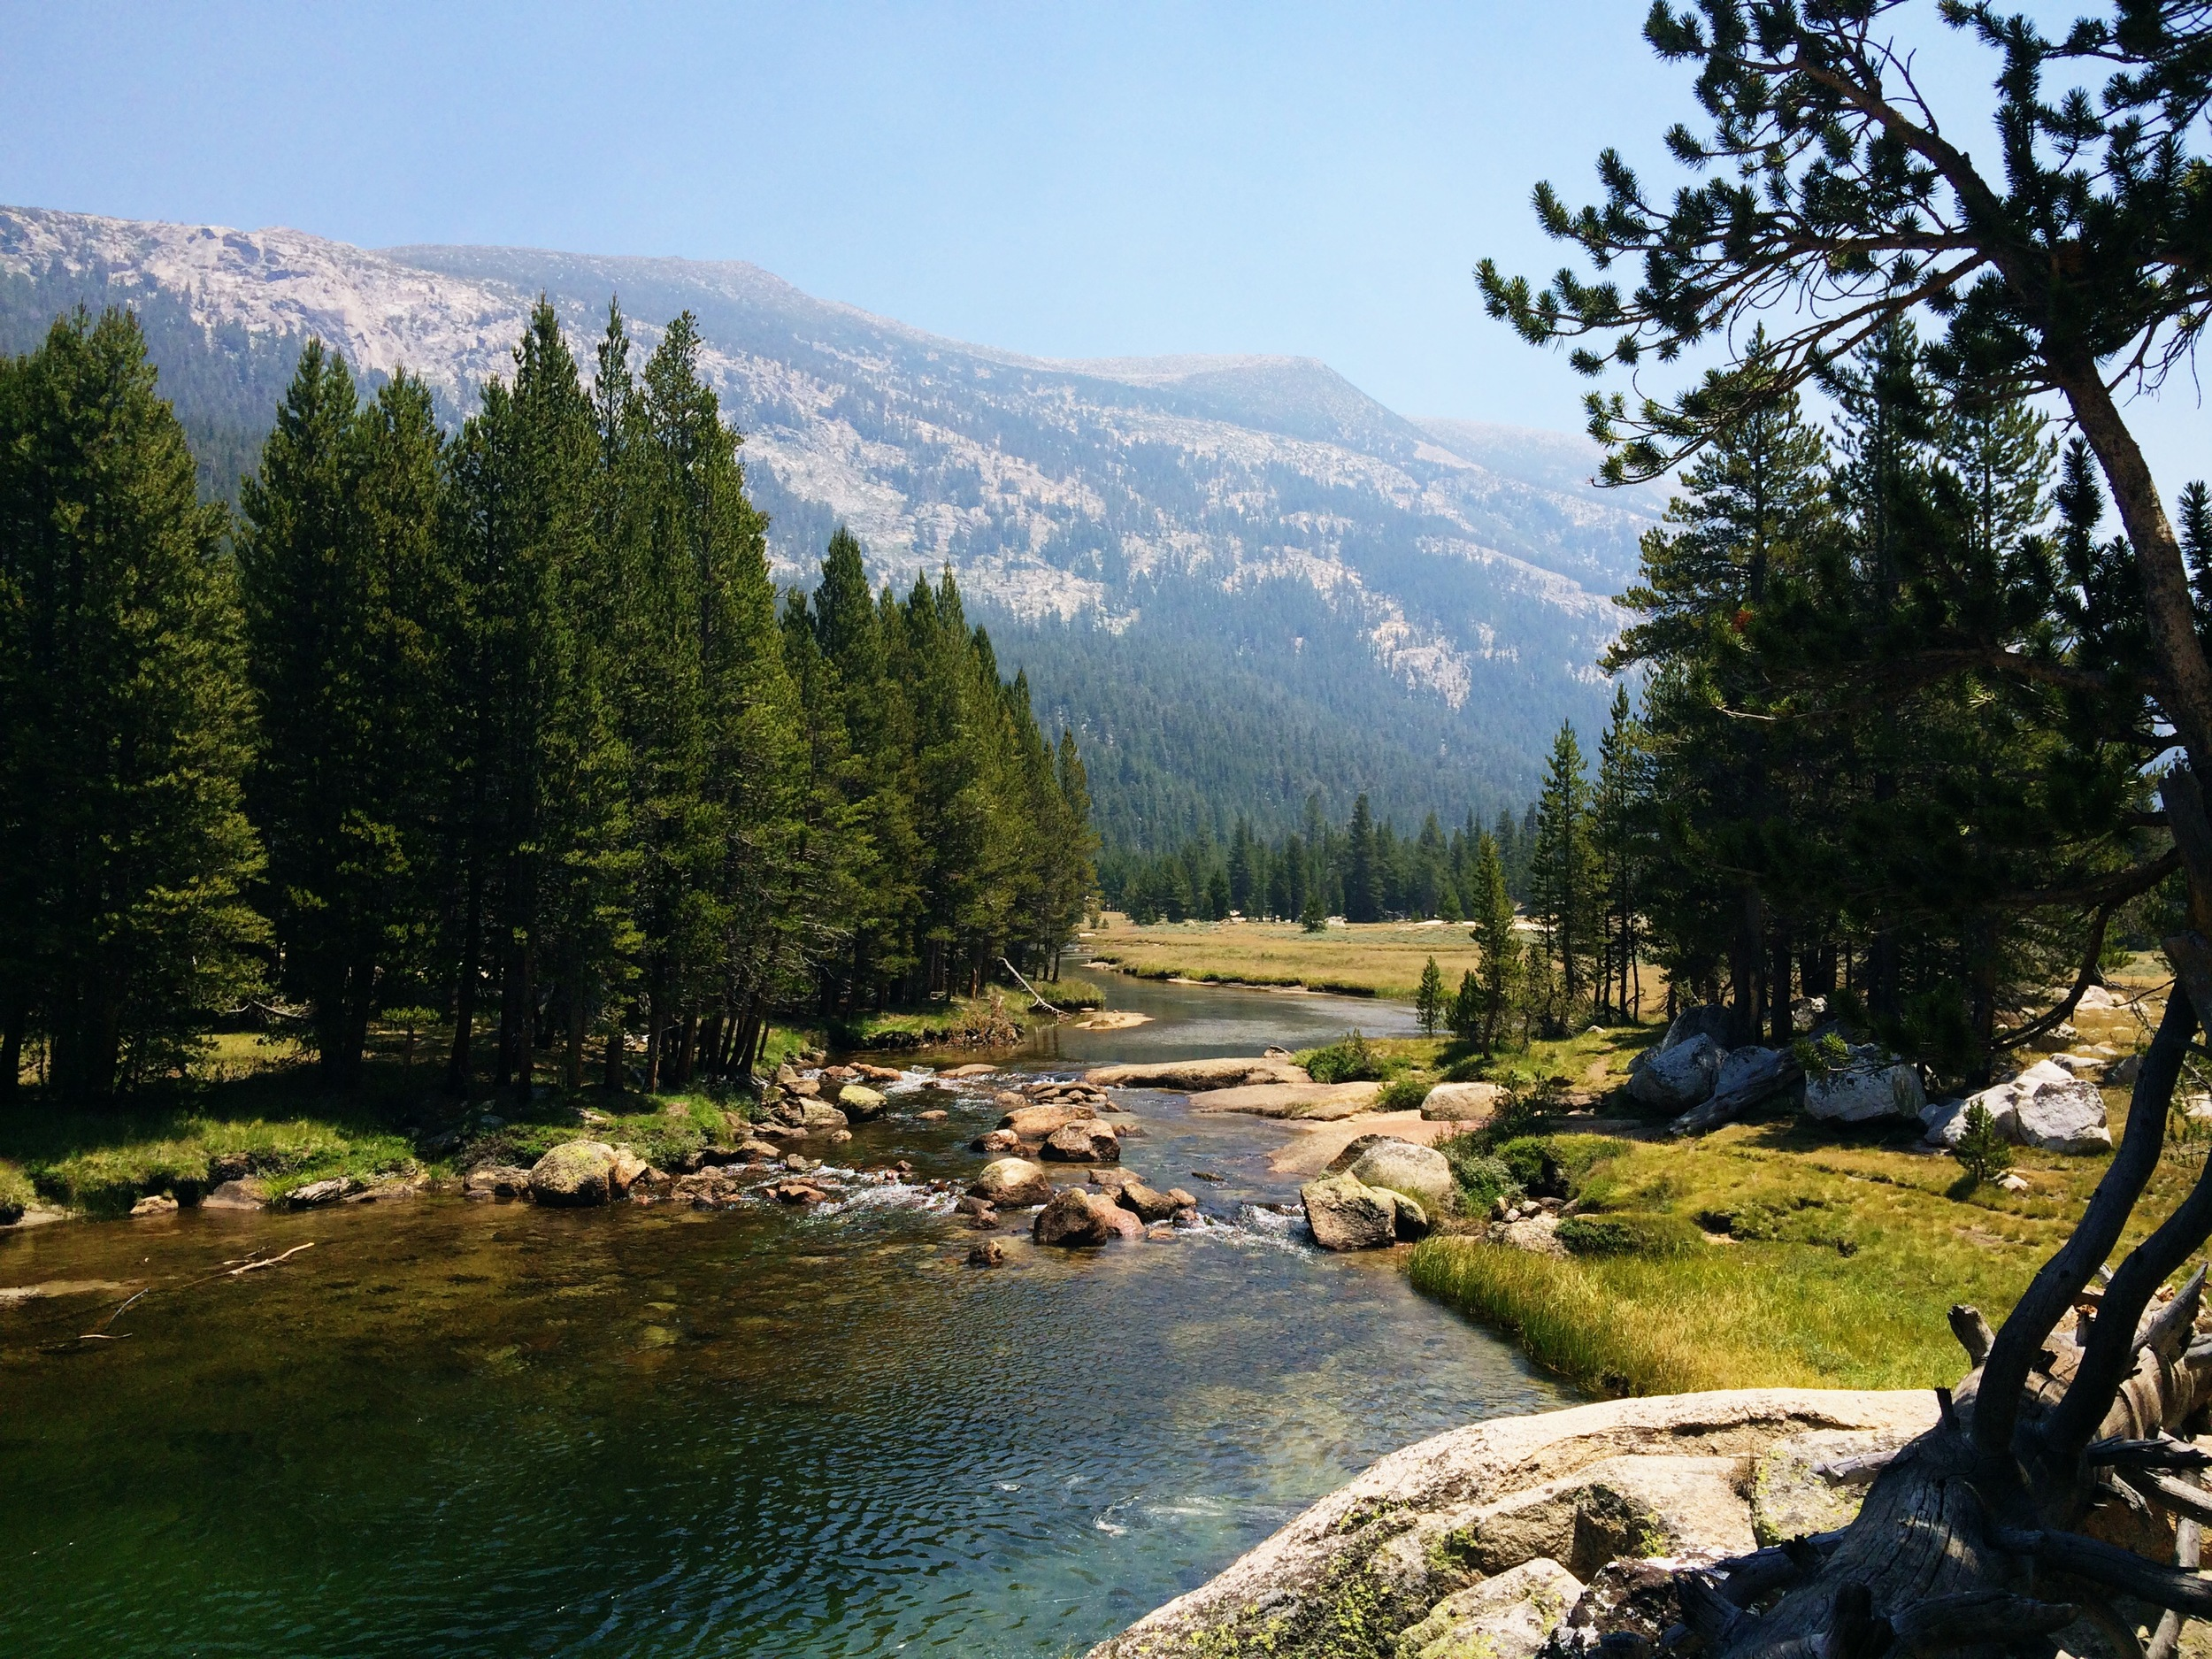 Entering Lyell Canyon from Tuolumne Meadows.